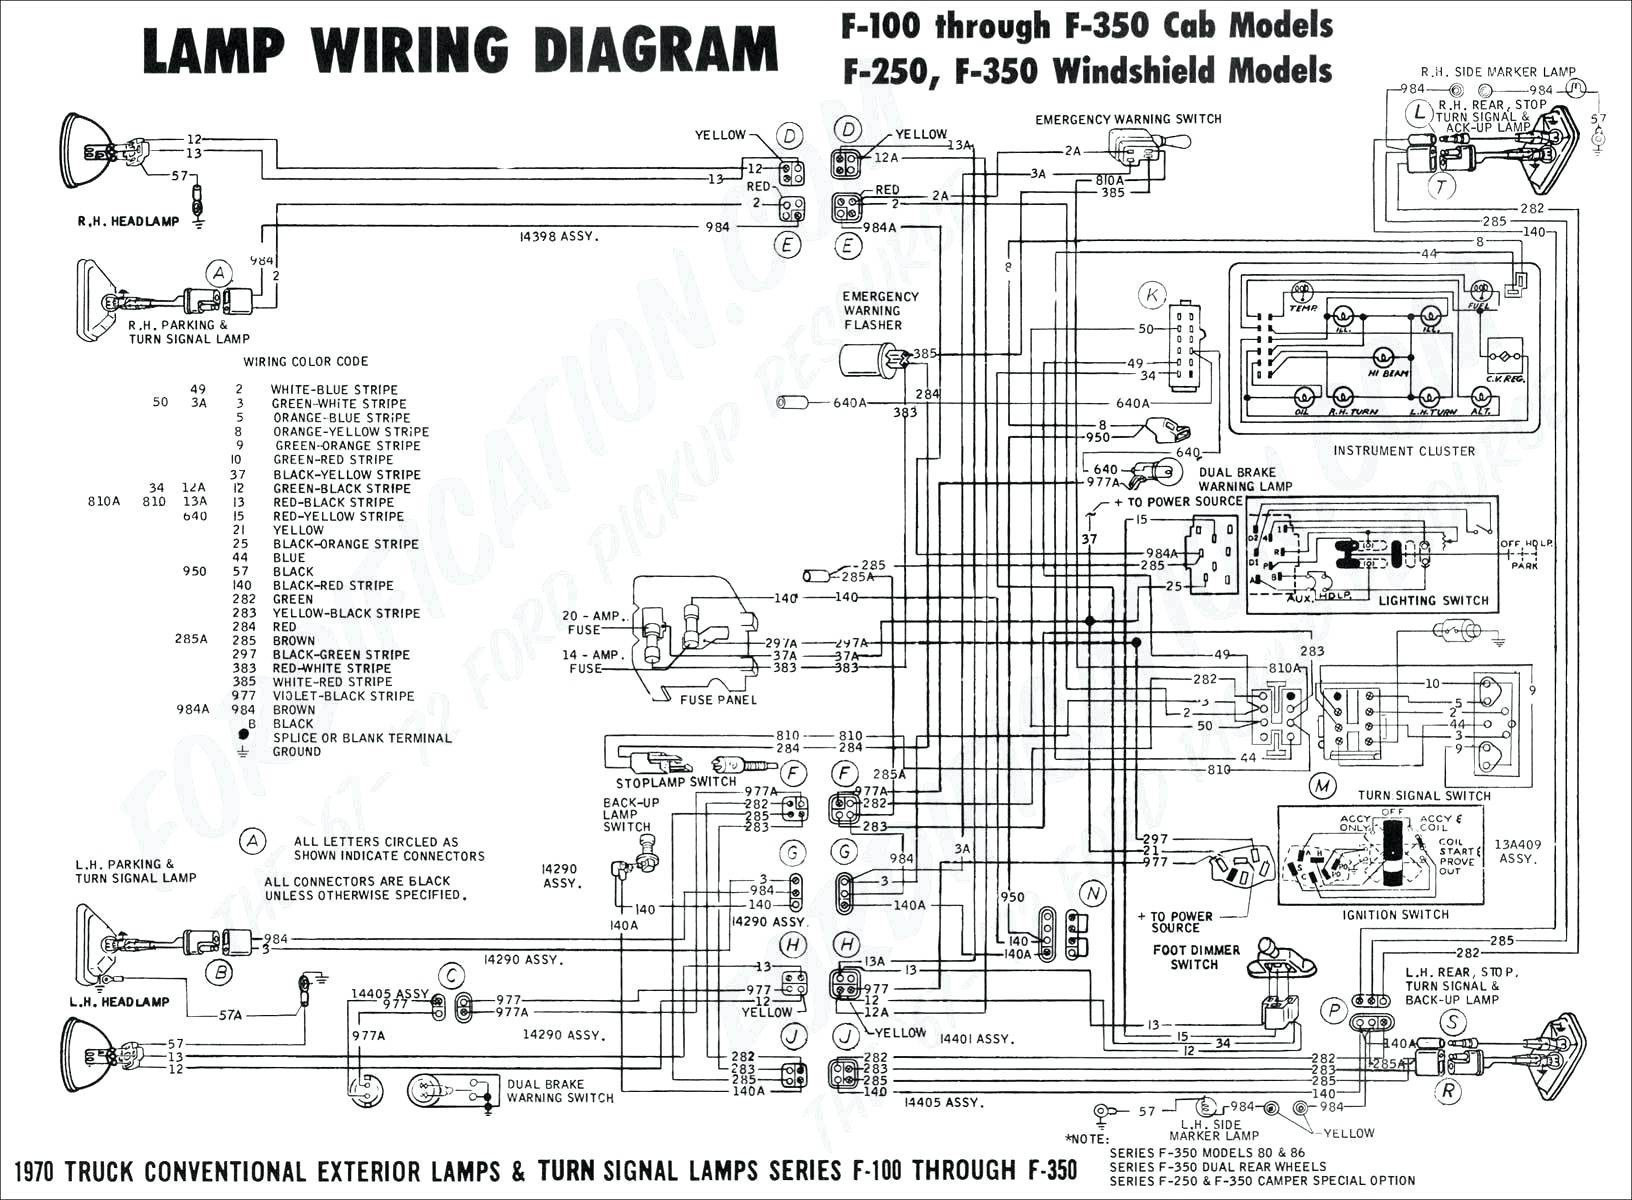 Lifan 110cc Engine Diagram Dirt Bike Engine Diagram with Labels Wiring Diagram Datasource Of Lifan 110cc Engine Diagram